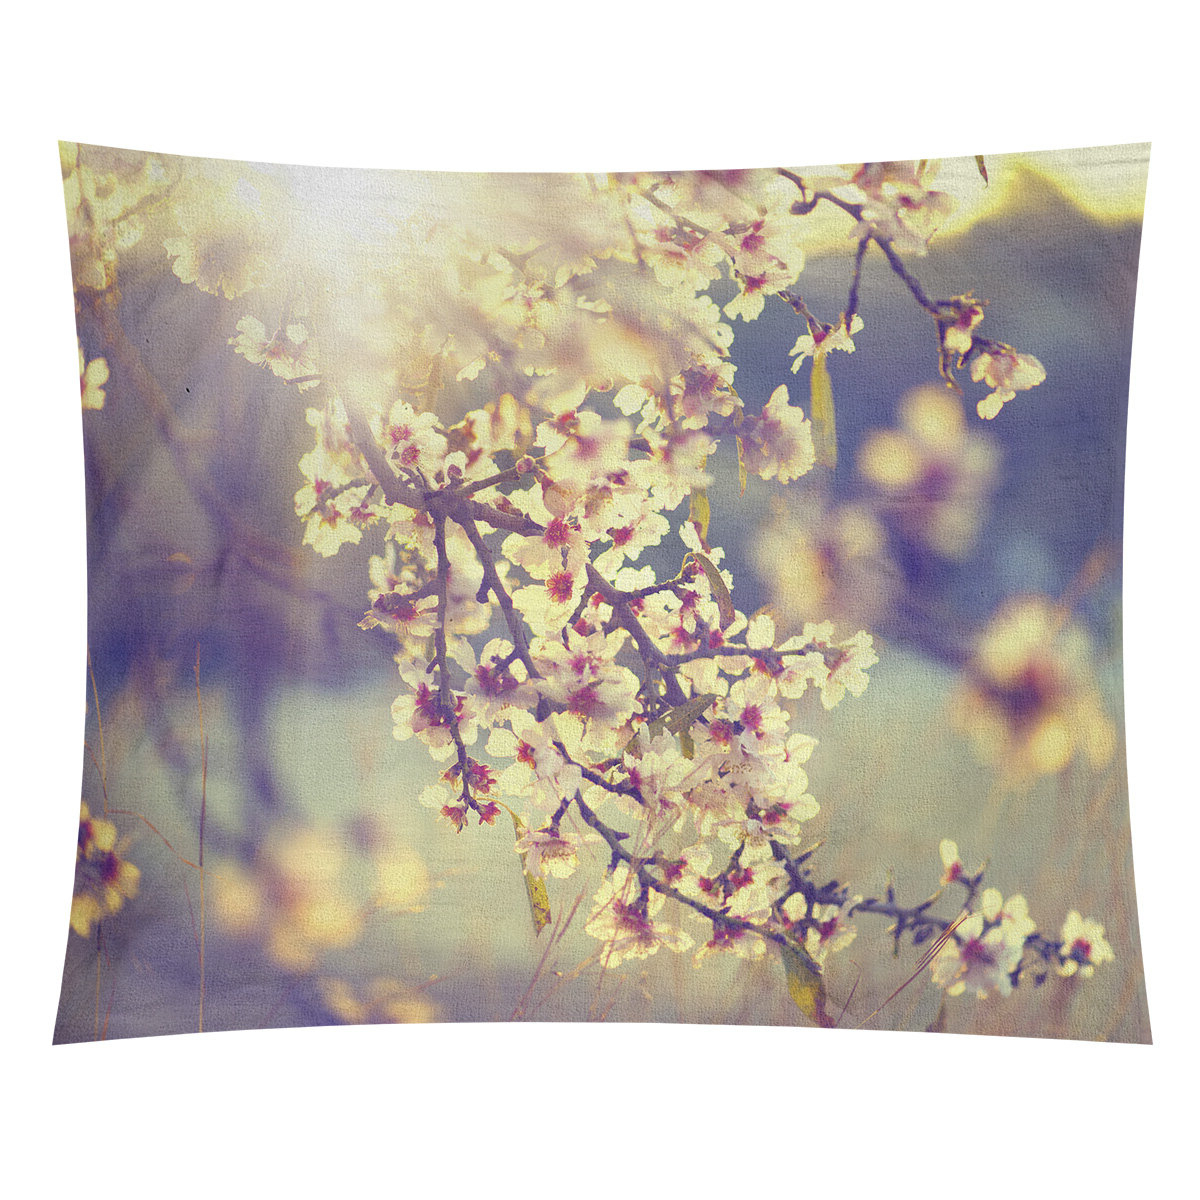 Bourbeau Cherry Blossoms Tapestry Throughout Newest Blended Fabric Spring Blossom Tapestries (View 20 of 20)